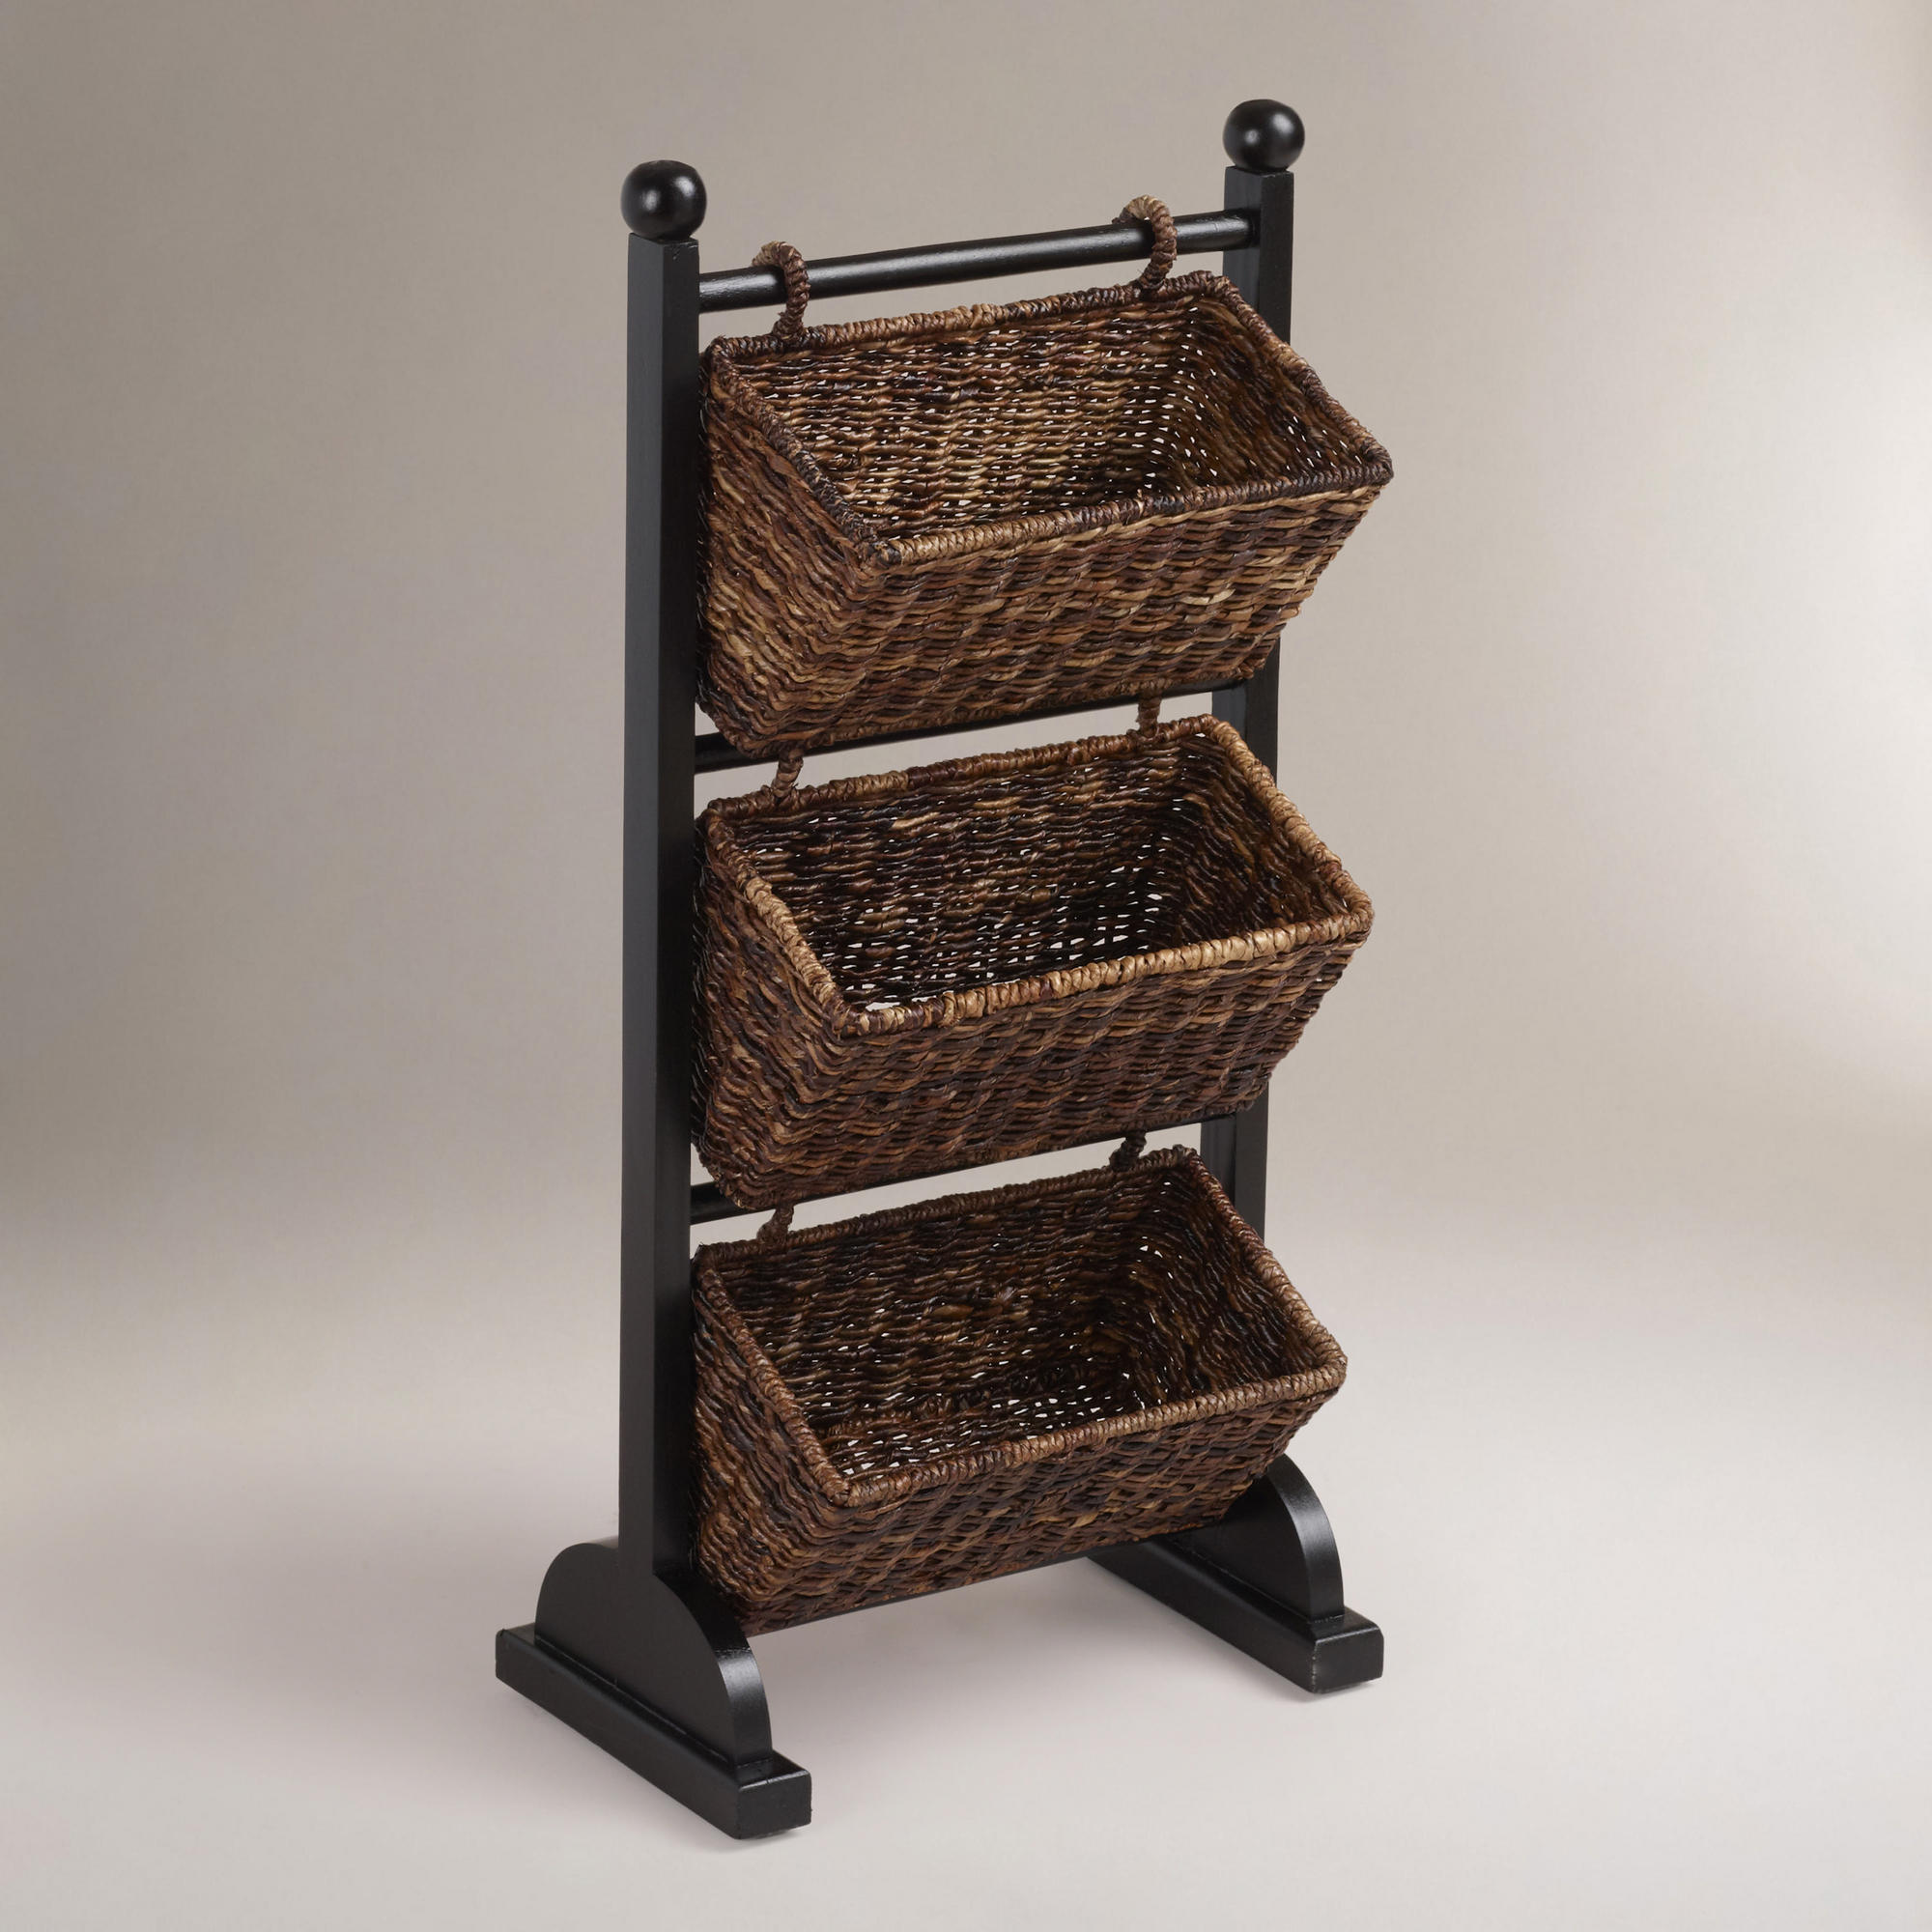 3 Tier Madras Cubby World Market From Cost Plus